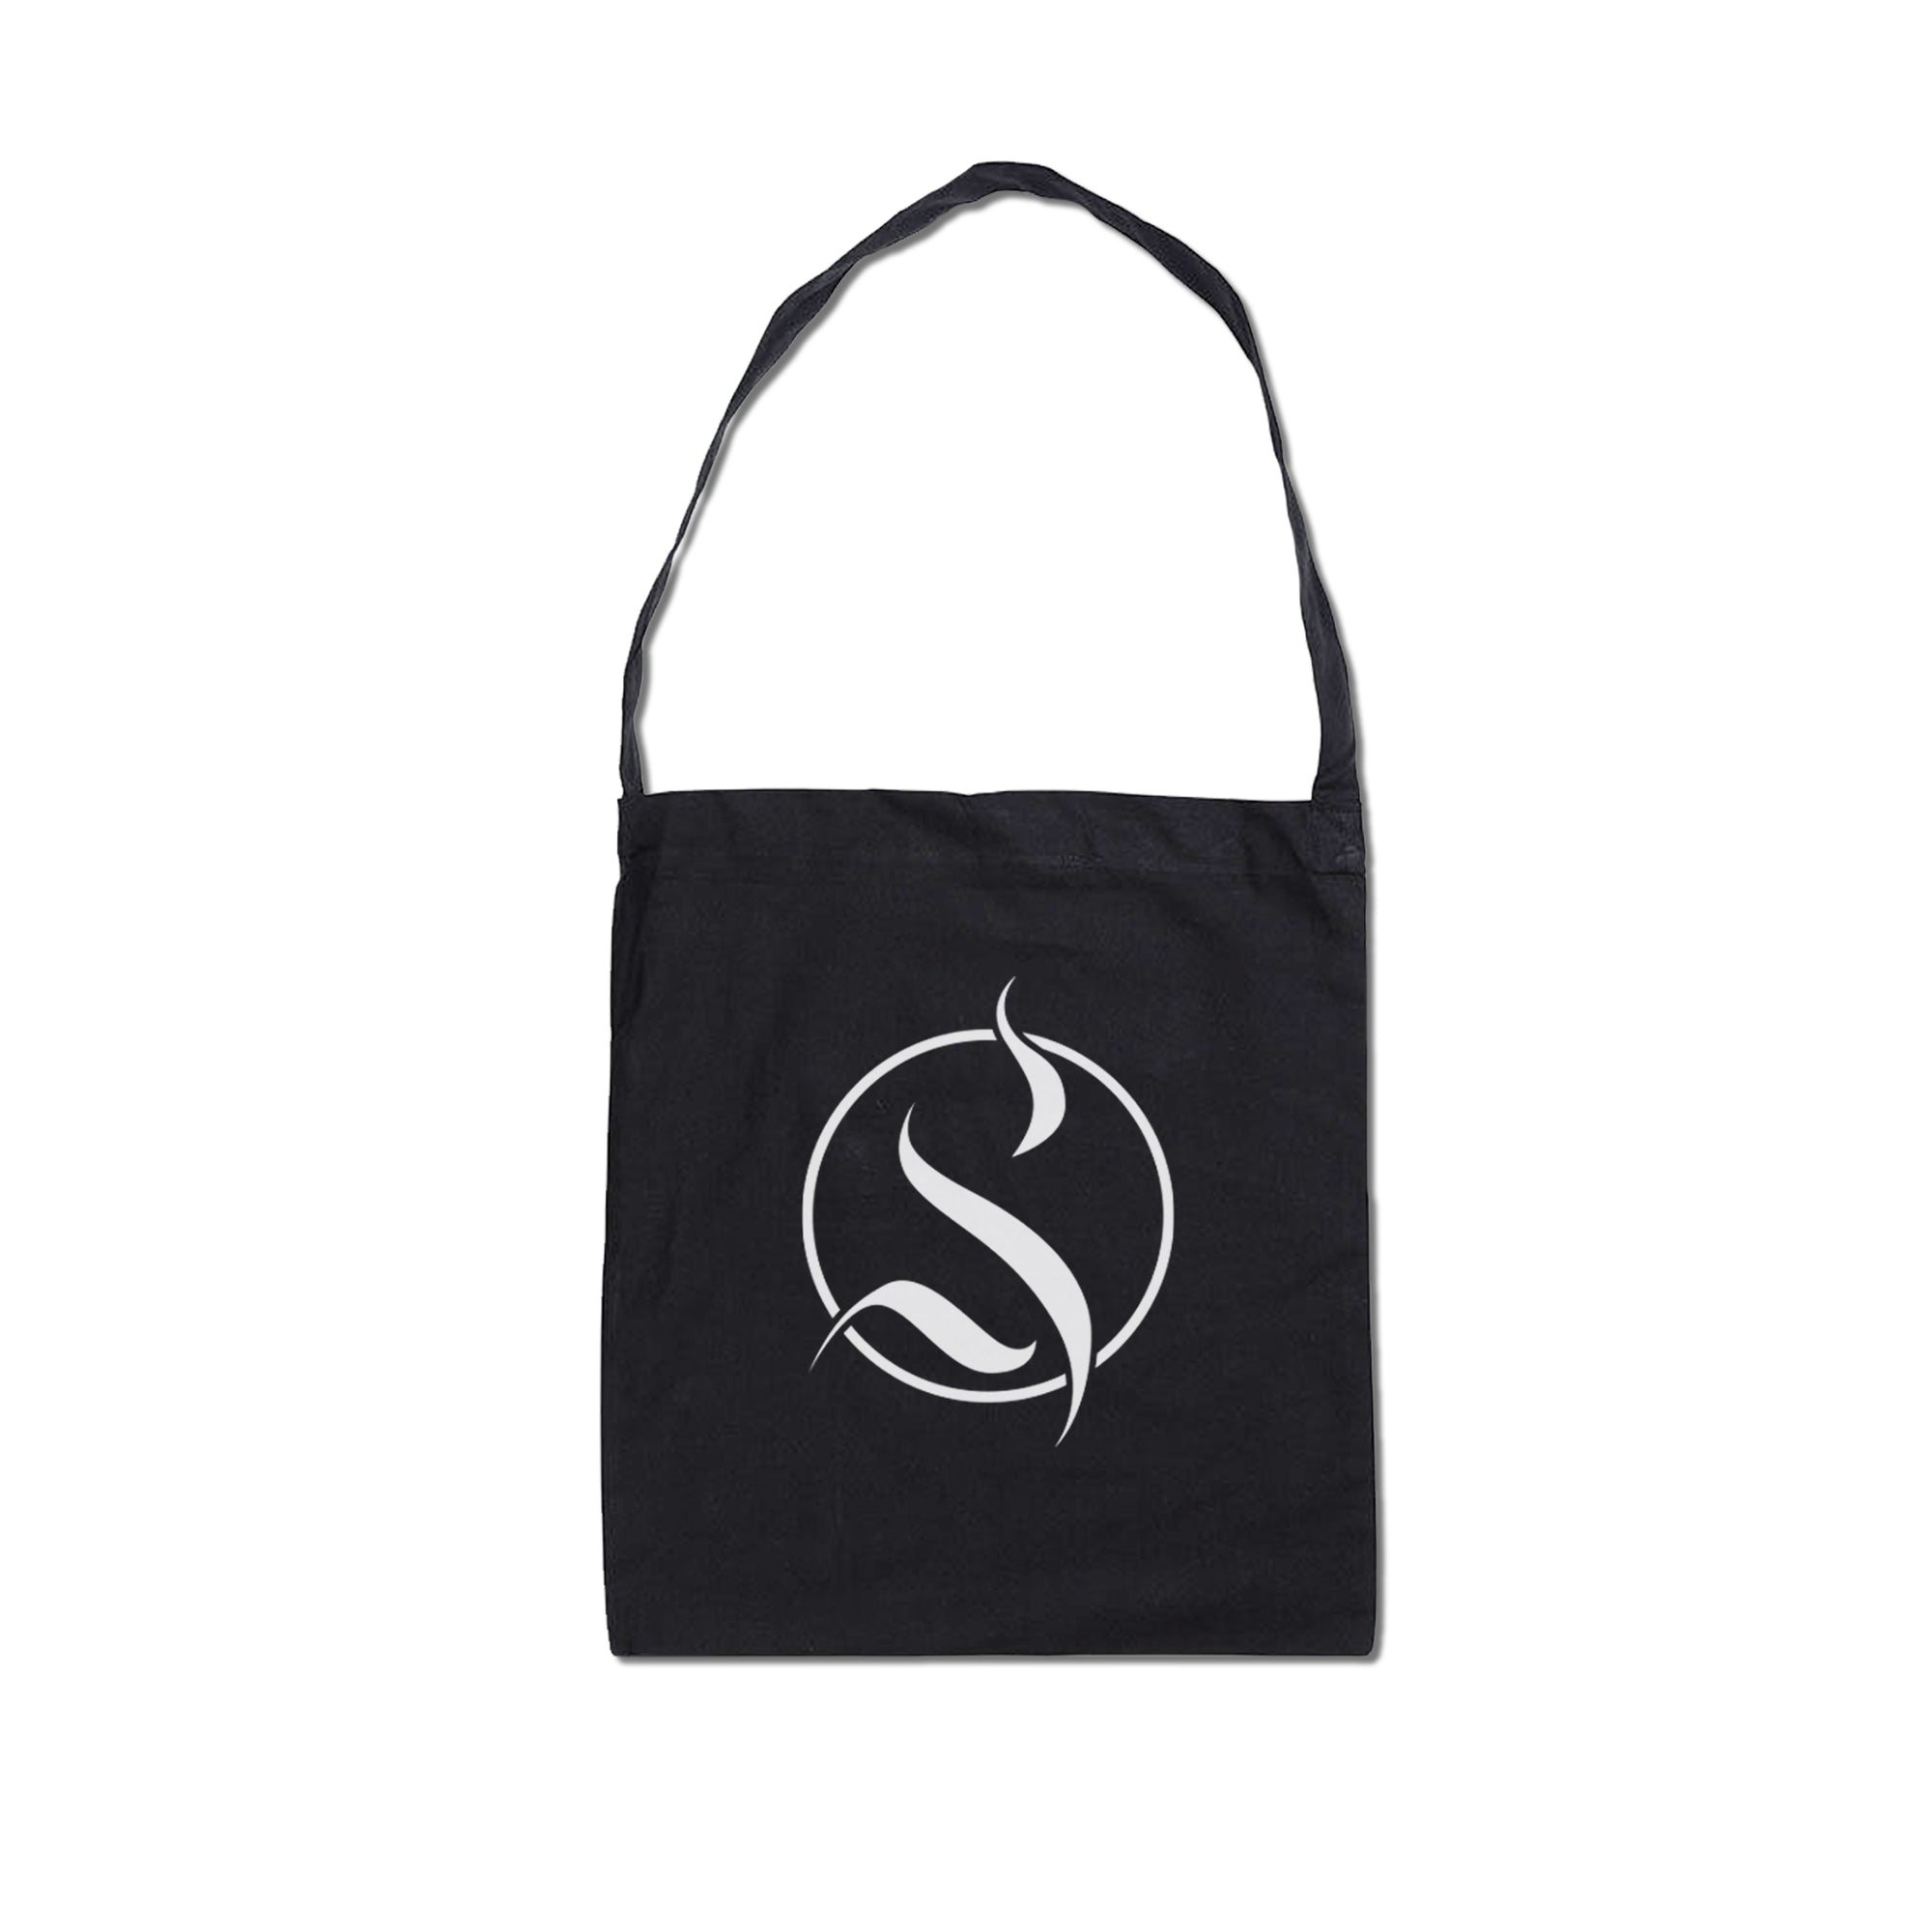 THE STRANGER // TOTE BAG